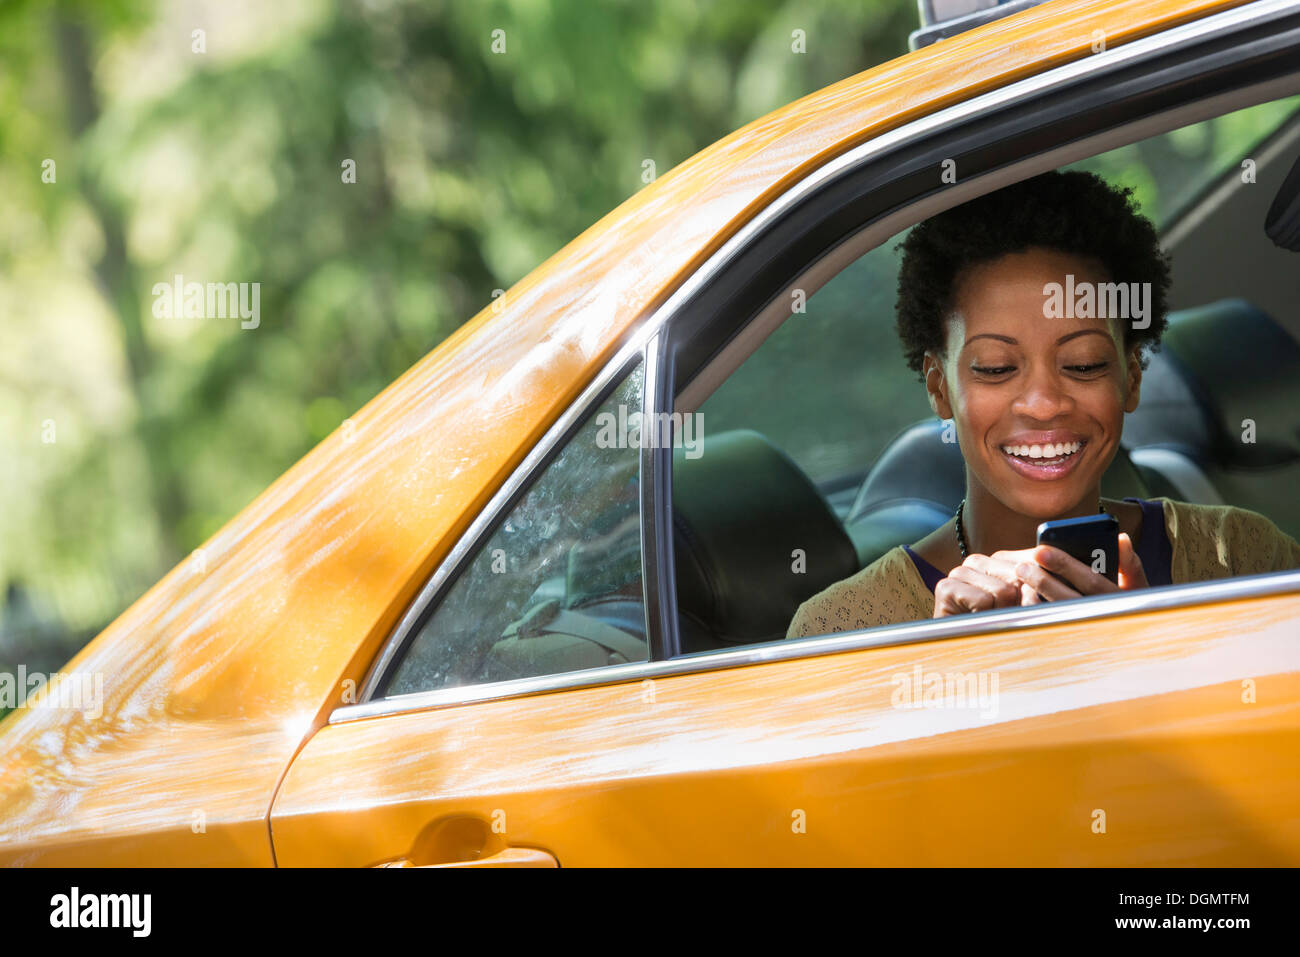 A woman sitting in the rear passenger seat of a yellow cab, checking her phone. Stock Photo